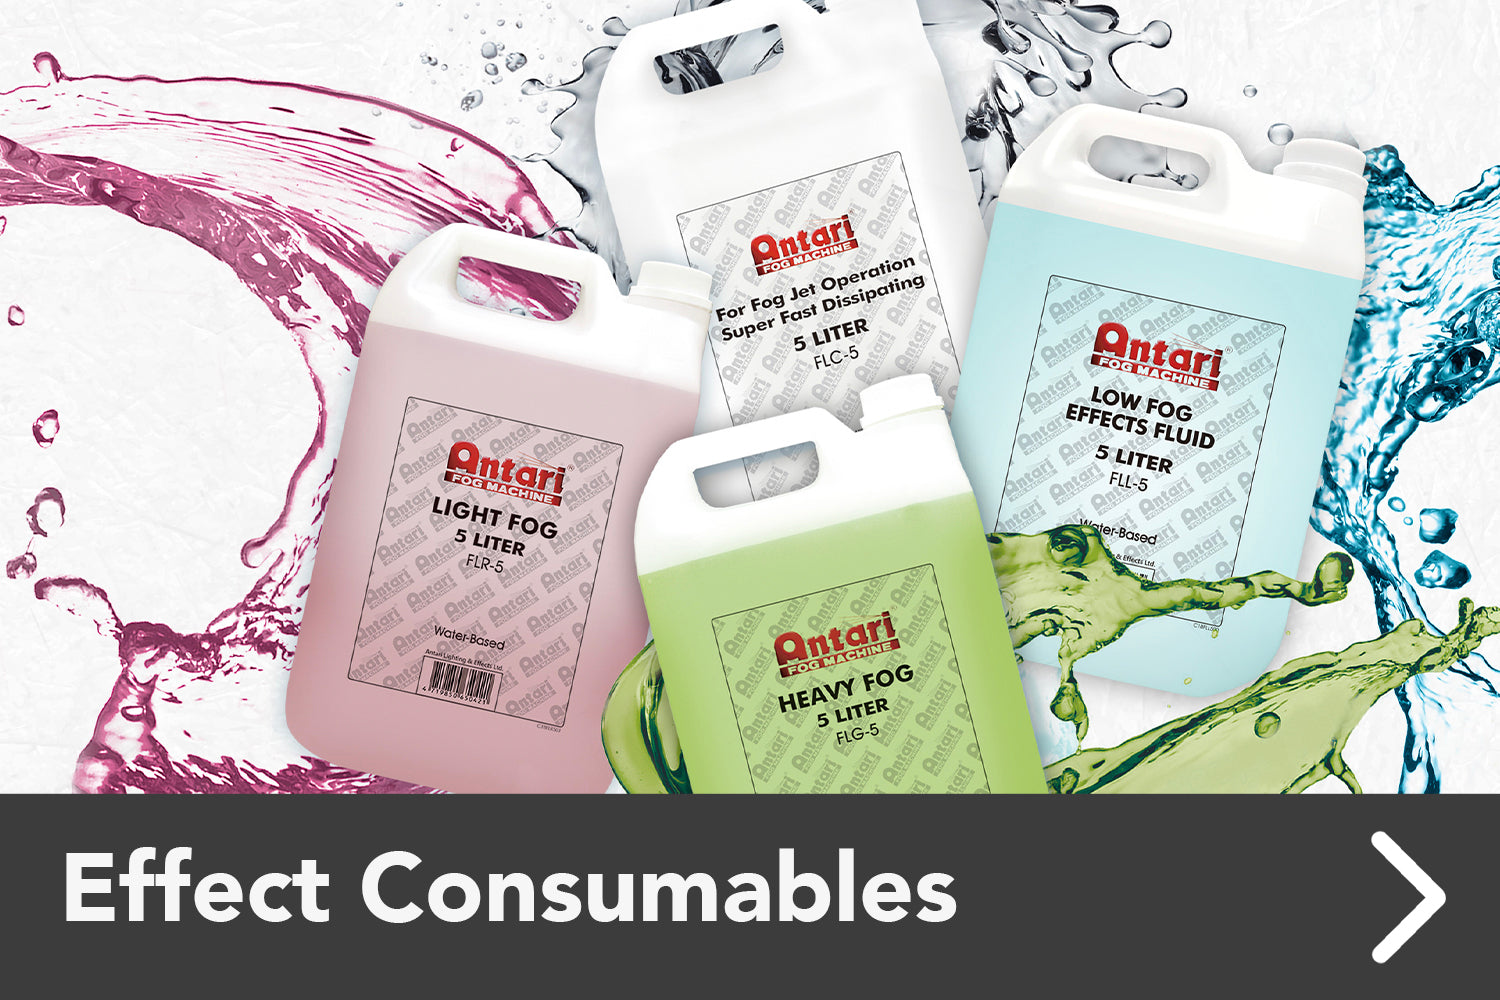 Effect Consumables